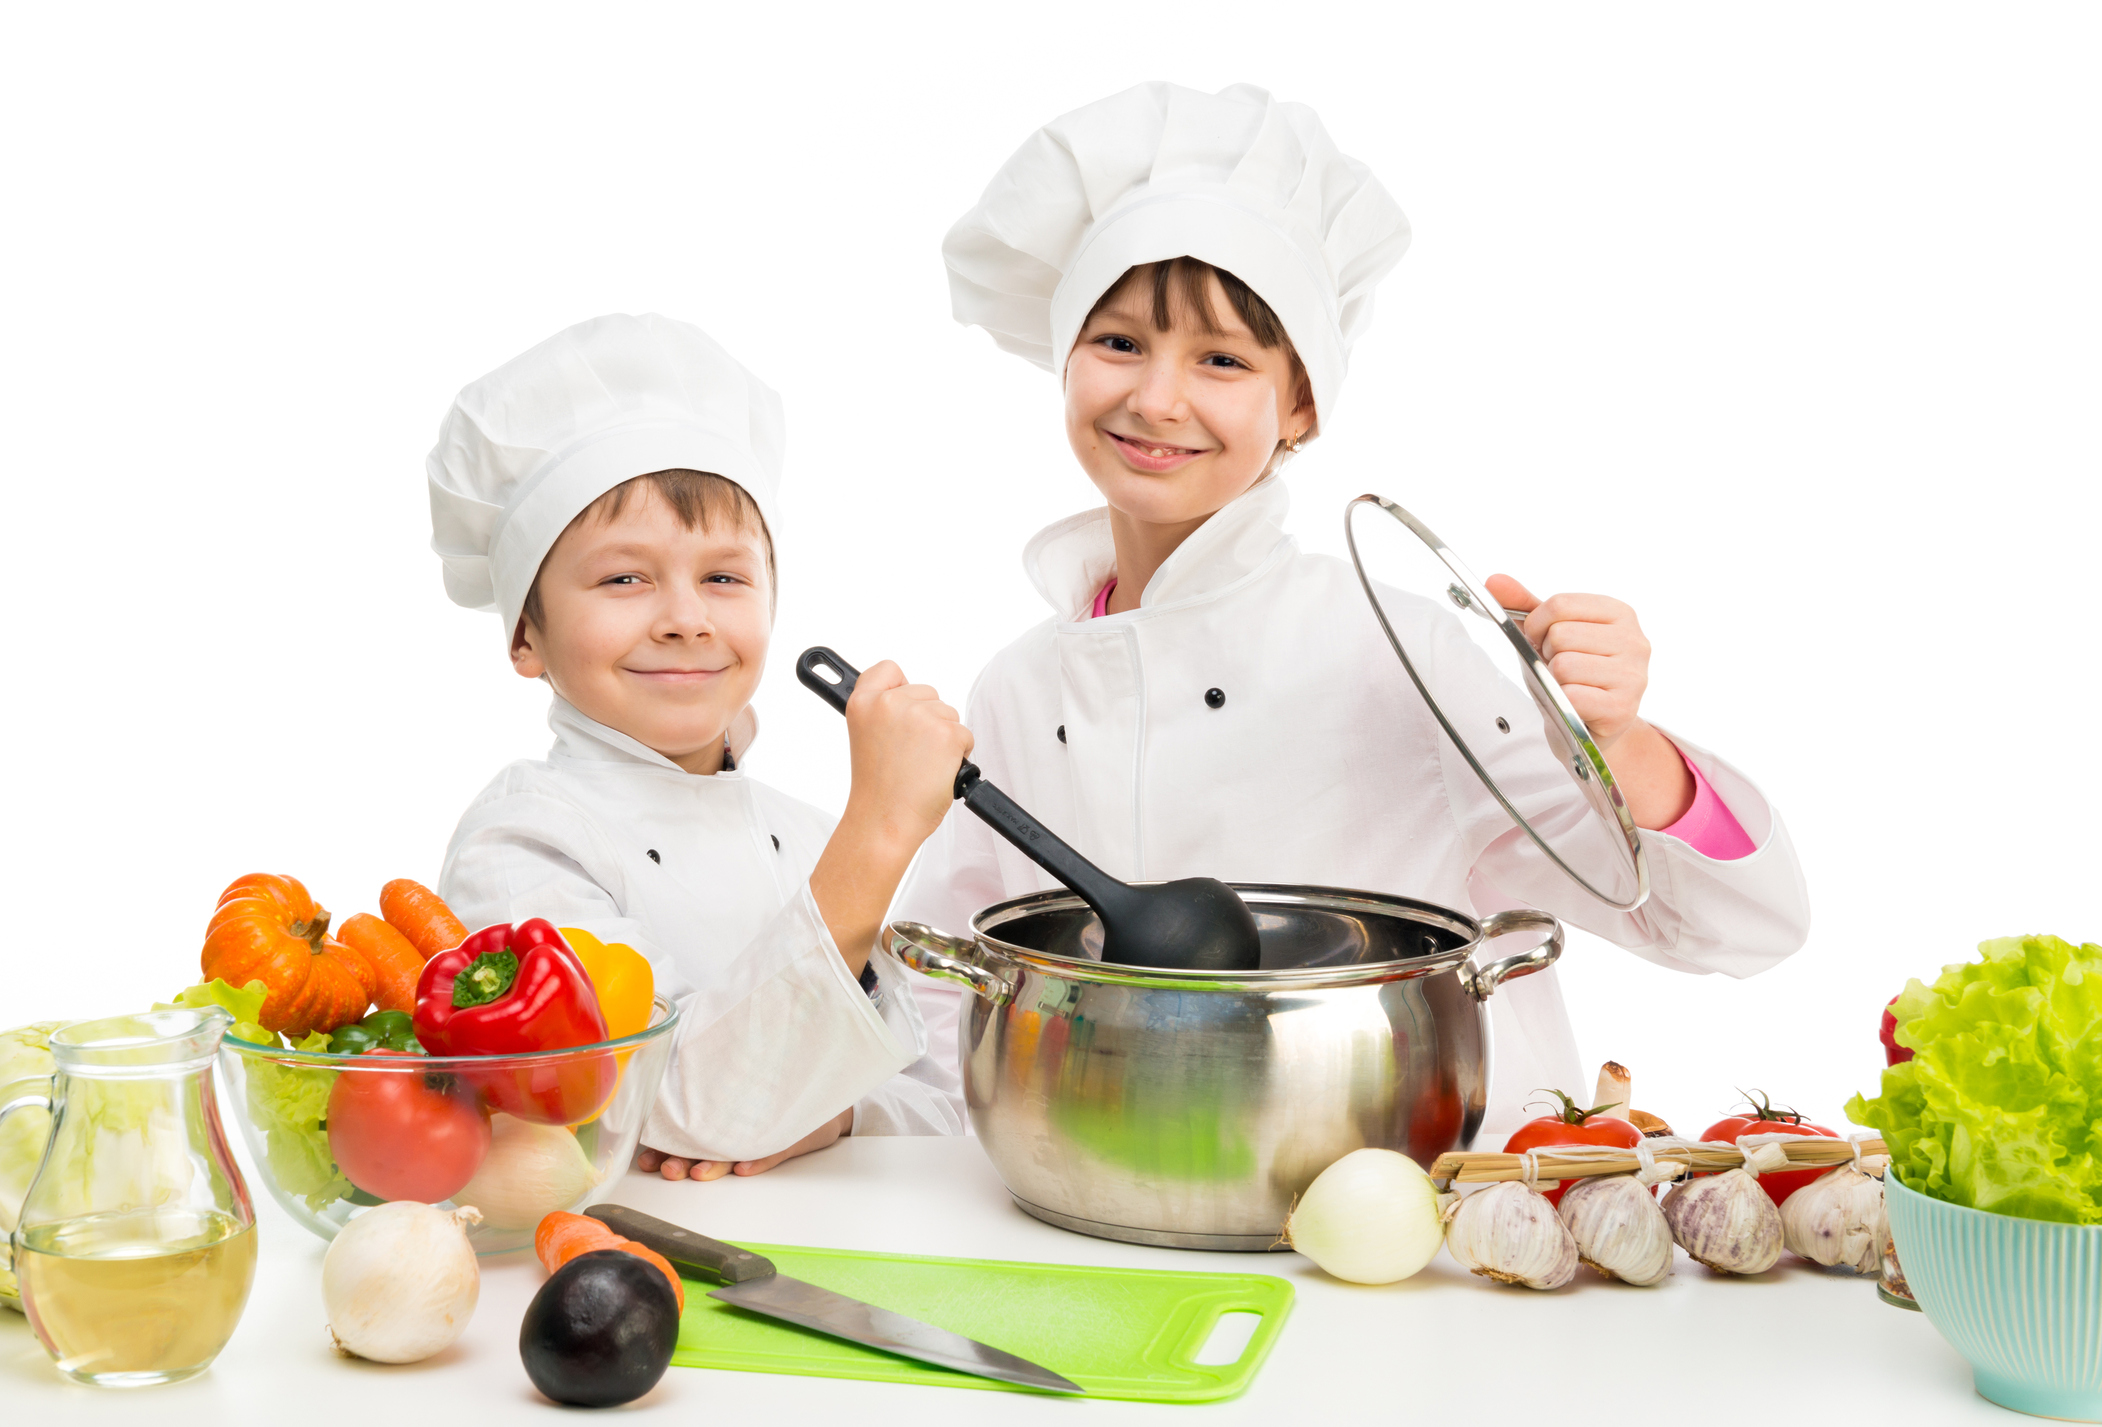 Healthy Cooking Classes 2019 - Places are limited. Book Now!